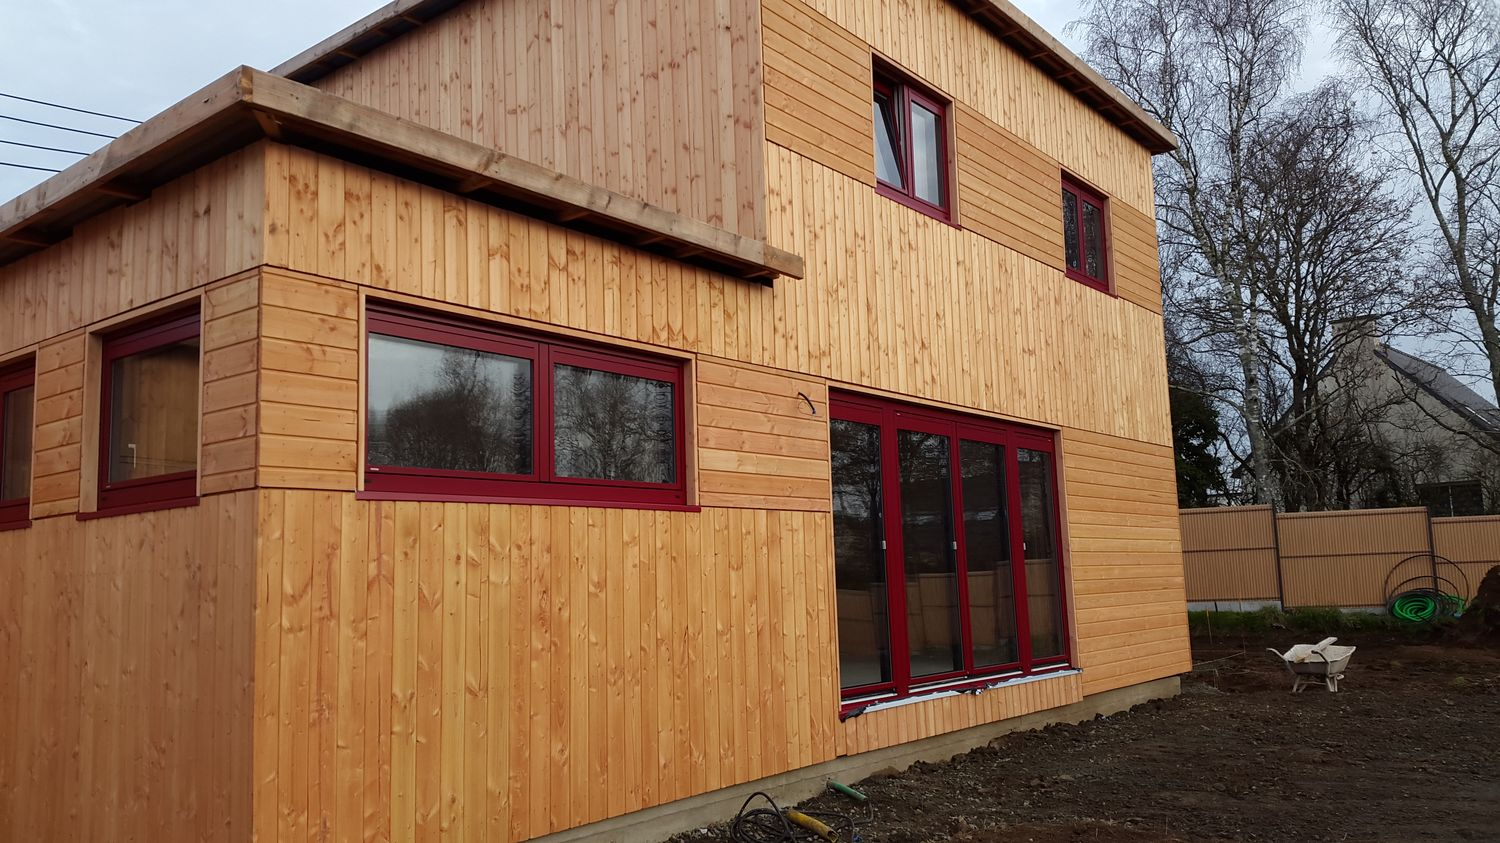 Maison passive pr s de morlaix en finist re bretagne for Autoconstruction maison passive